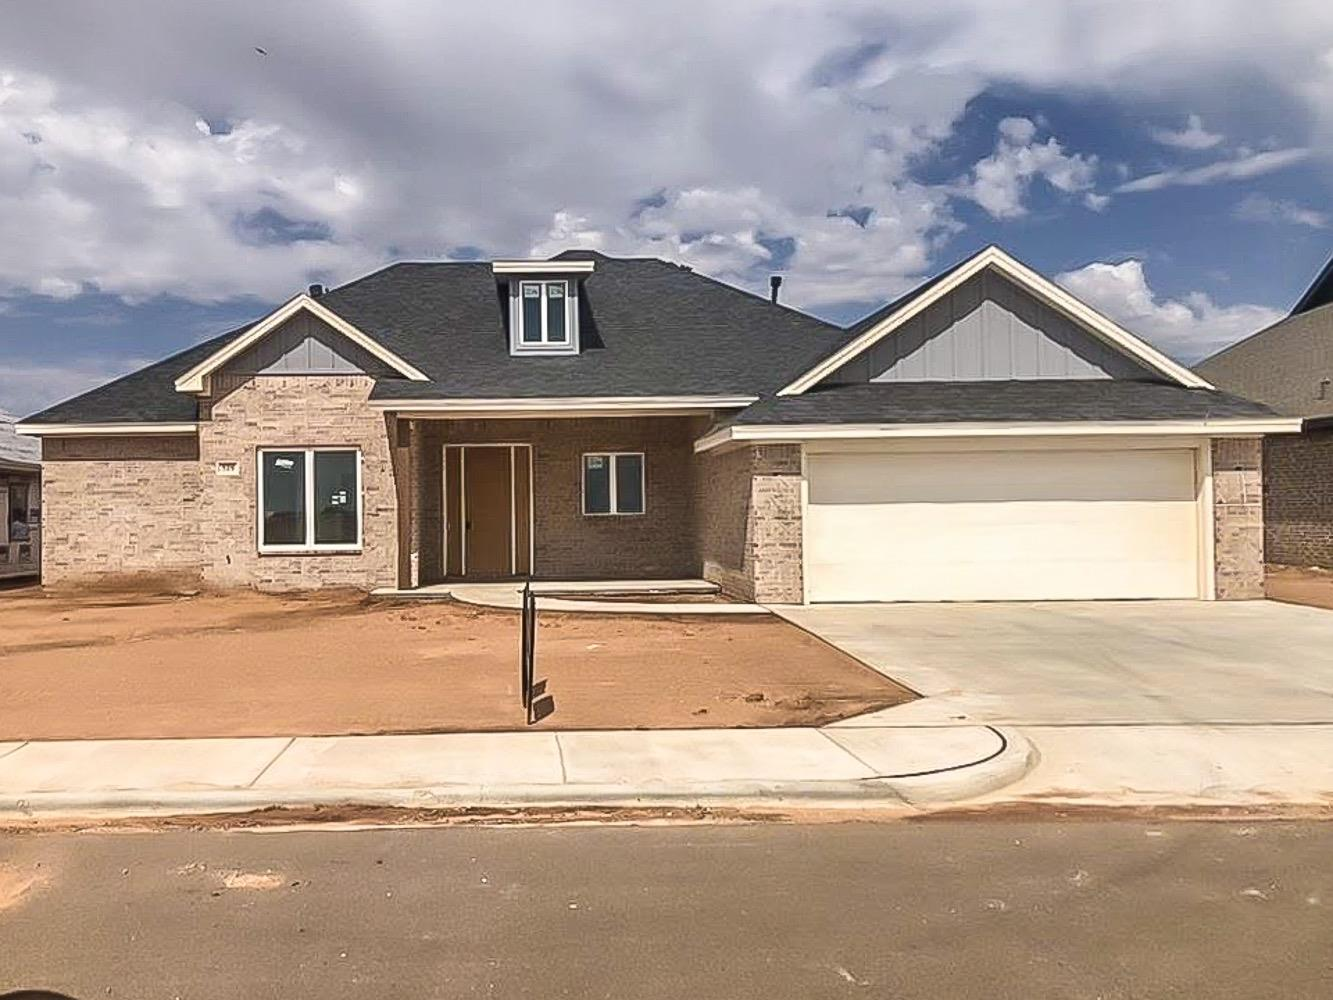 This beautiful new construction home in Shallowater's Diamondhead Estates is almost ready for its new owner! This farmhouse welcomes you with an oversized front porch. Inside you will find soaring 12' ceilings and luxury vinyl plank floors, energy efficient gas fireplace with shiplap, tile, granite hearth, and built-ins. The stunning kitchen features a 10' island, custom wood vent hood, gas range, beautiful granite, and a walk-through pantry. The isolated master bedroom and bathroom boasts a dreamy, free-standing tub, double vanities, and his-and-hers closets. Two additional bedrooms share a jack-and-jill bathroom, and the 4th bedroom with attached bathroom could be a study or flex space. The covered back porch and outdoor kitchen is the perfect place to spend summer nights with family and friends. Schedule your private showing to see this amazing home today...it won't be here long!